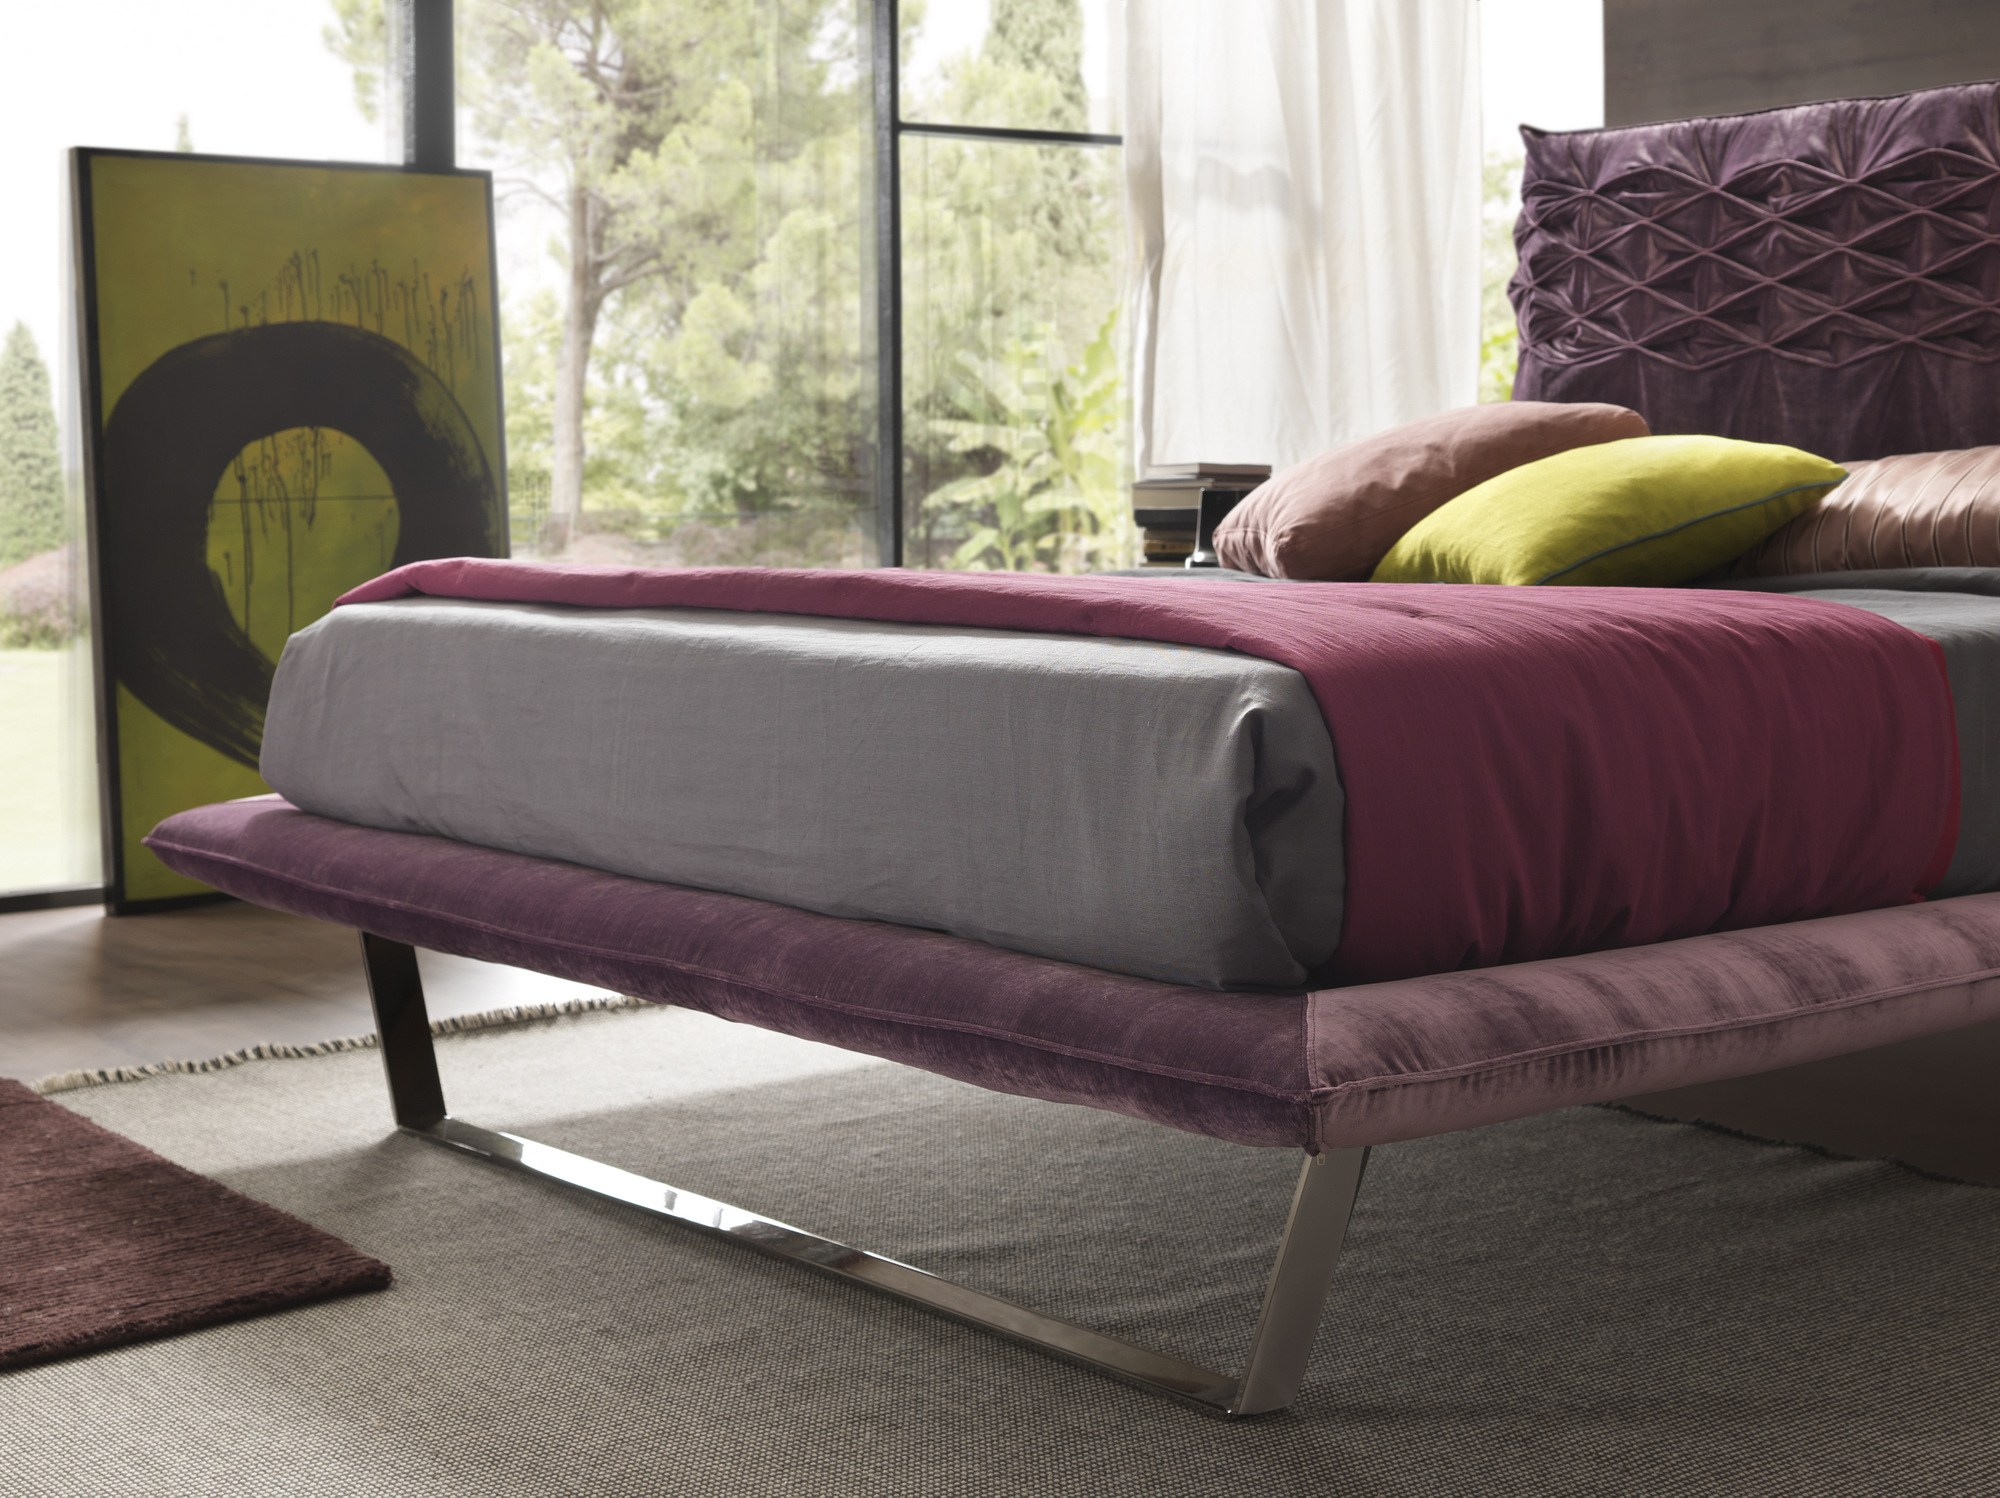 Nice Light Bed by Bolzan Letti